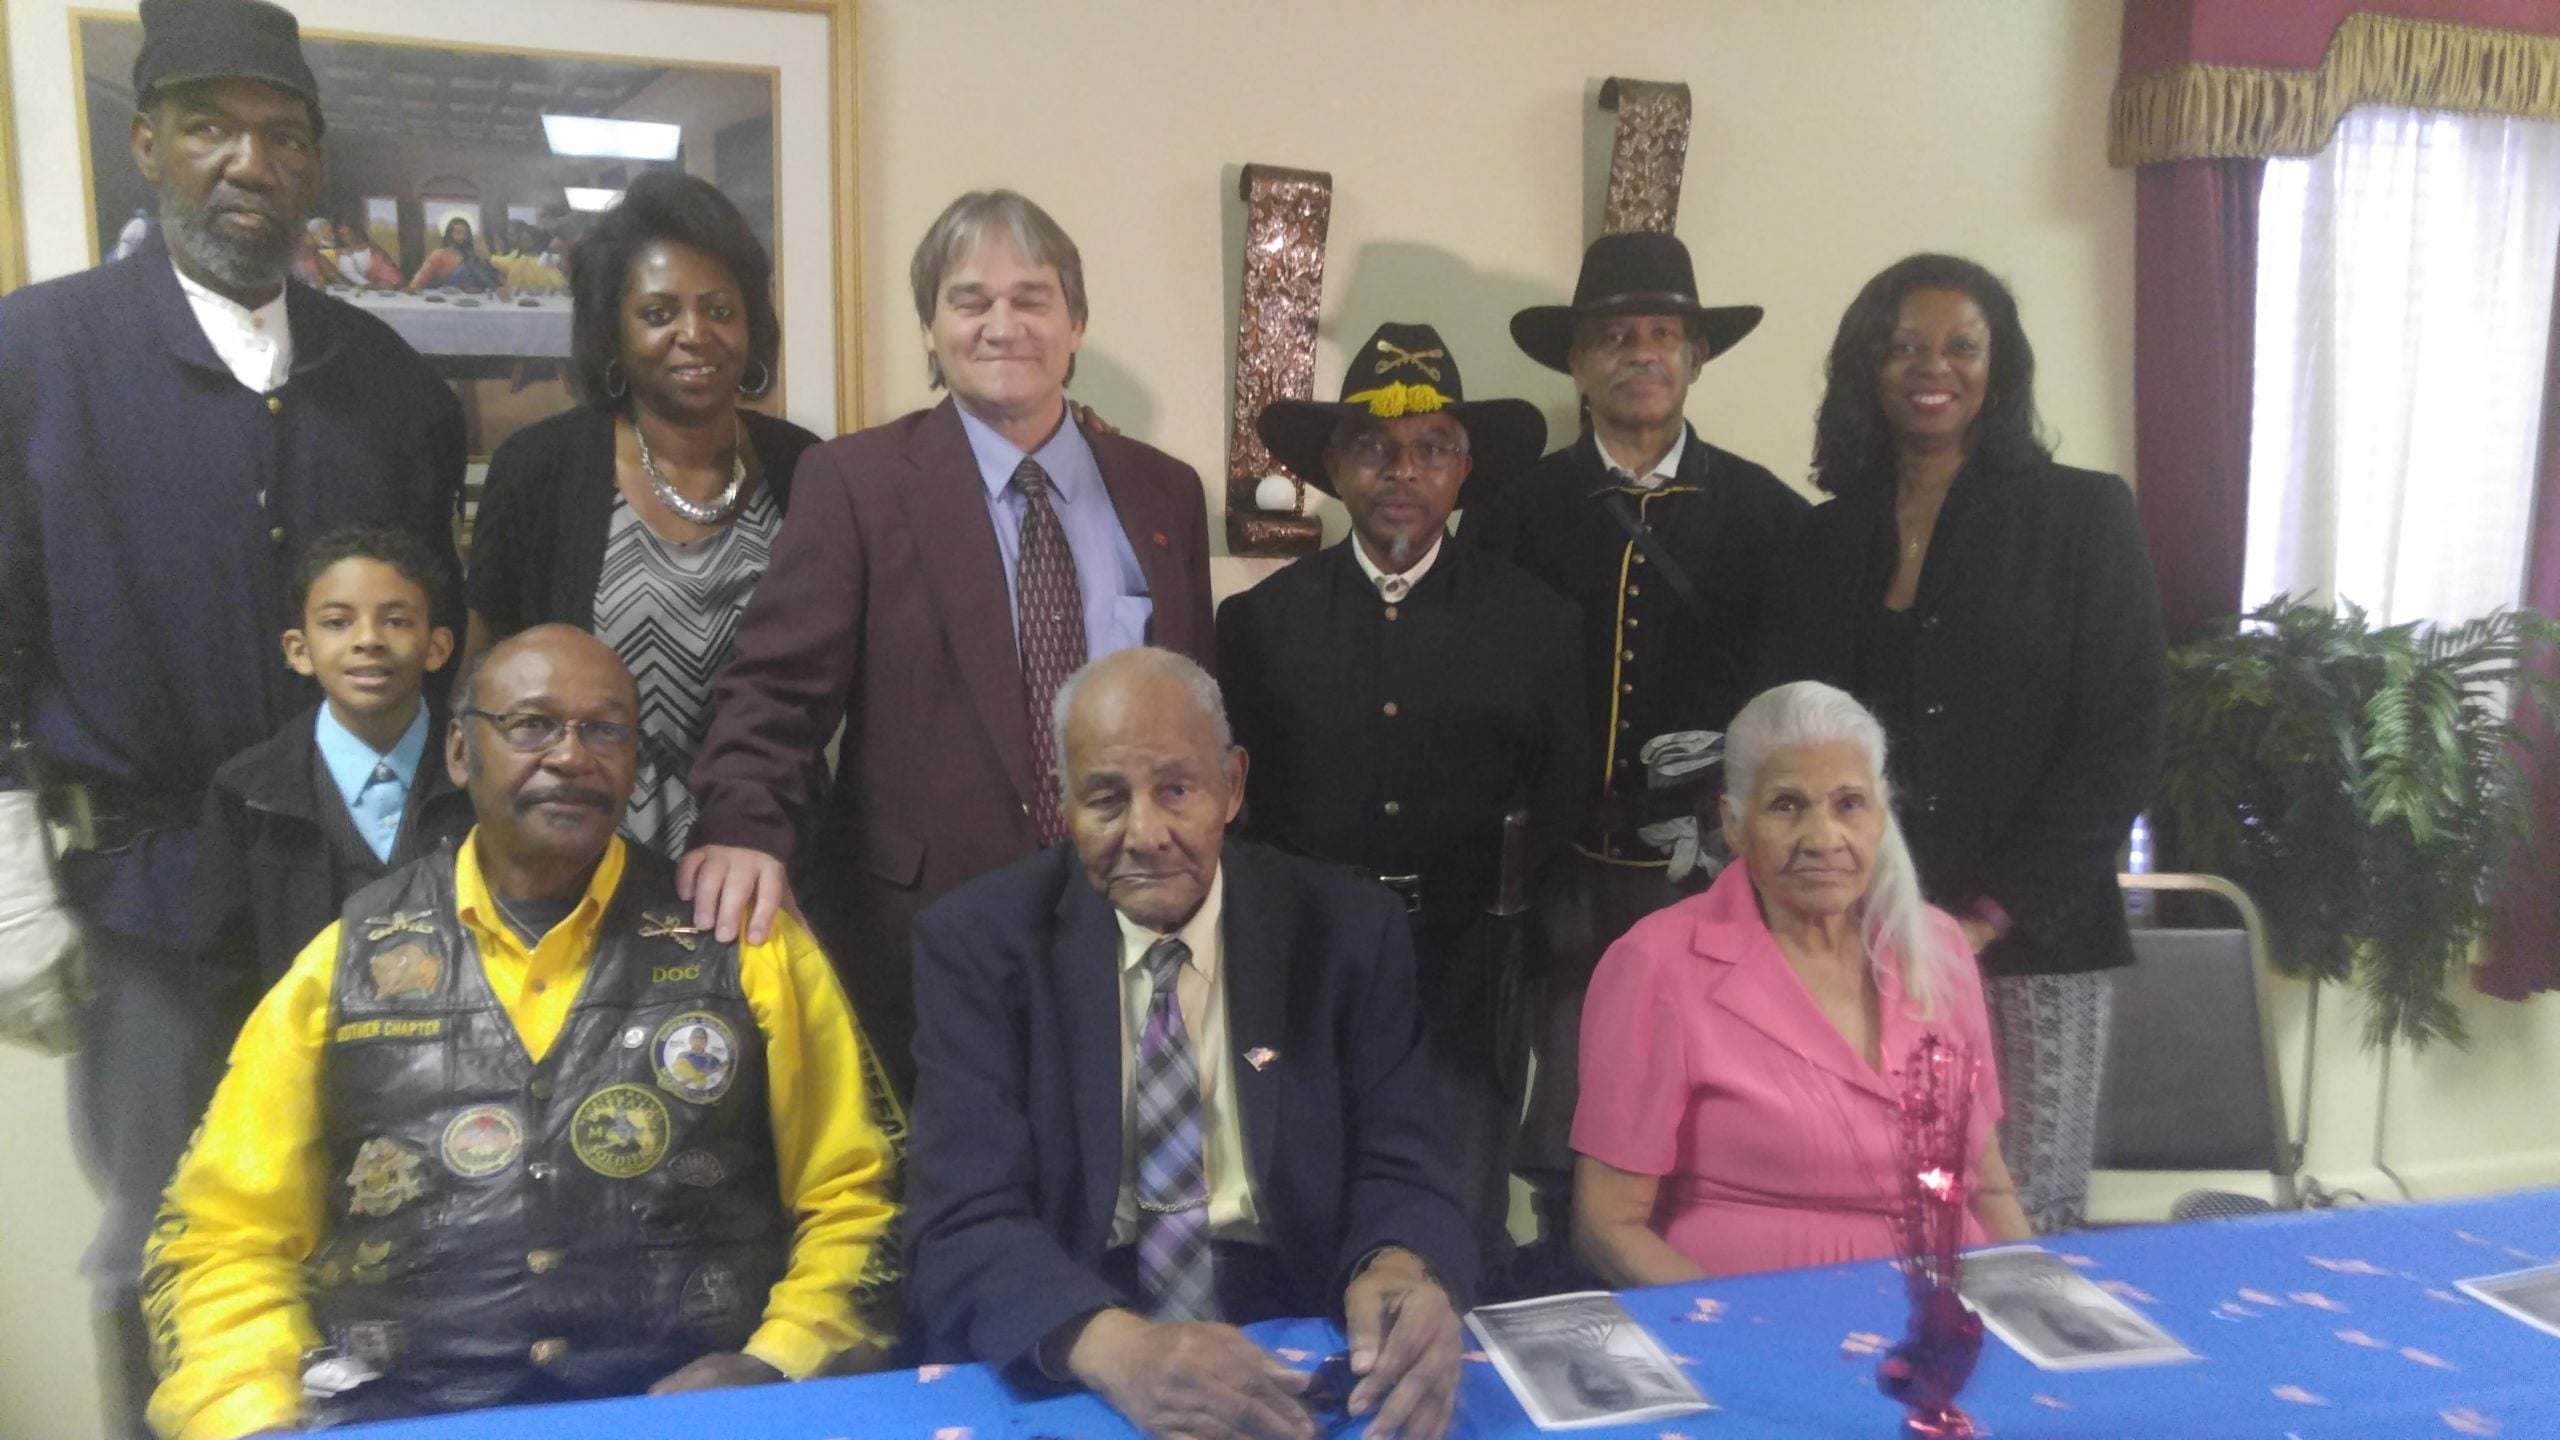 Willie Rogers, first row center, celebrated his 101st birthday in March 2016 surrounded by friends, family.